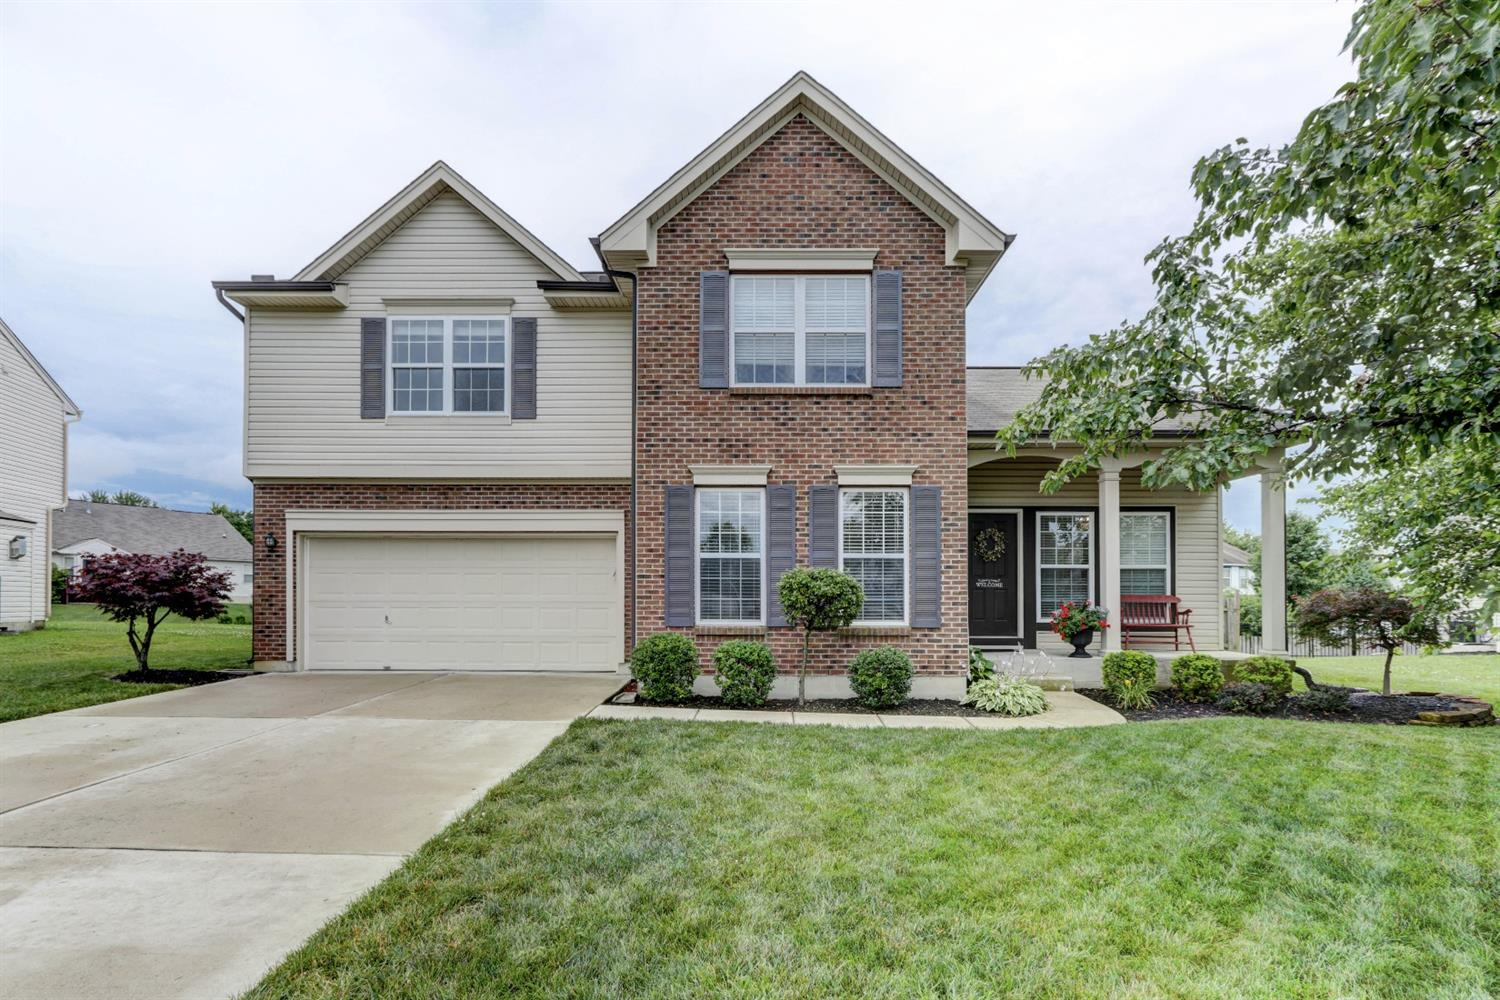 312 Patriot Court, Lebanon, OH 45036